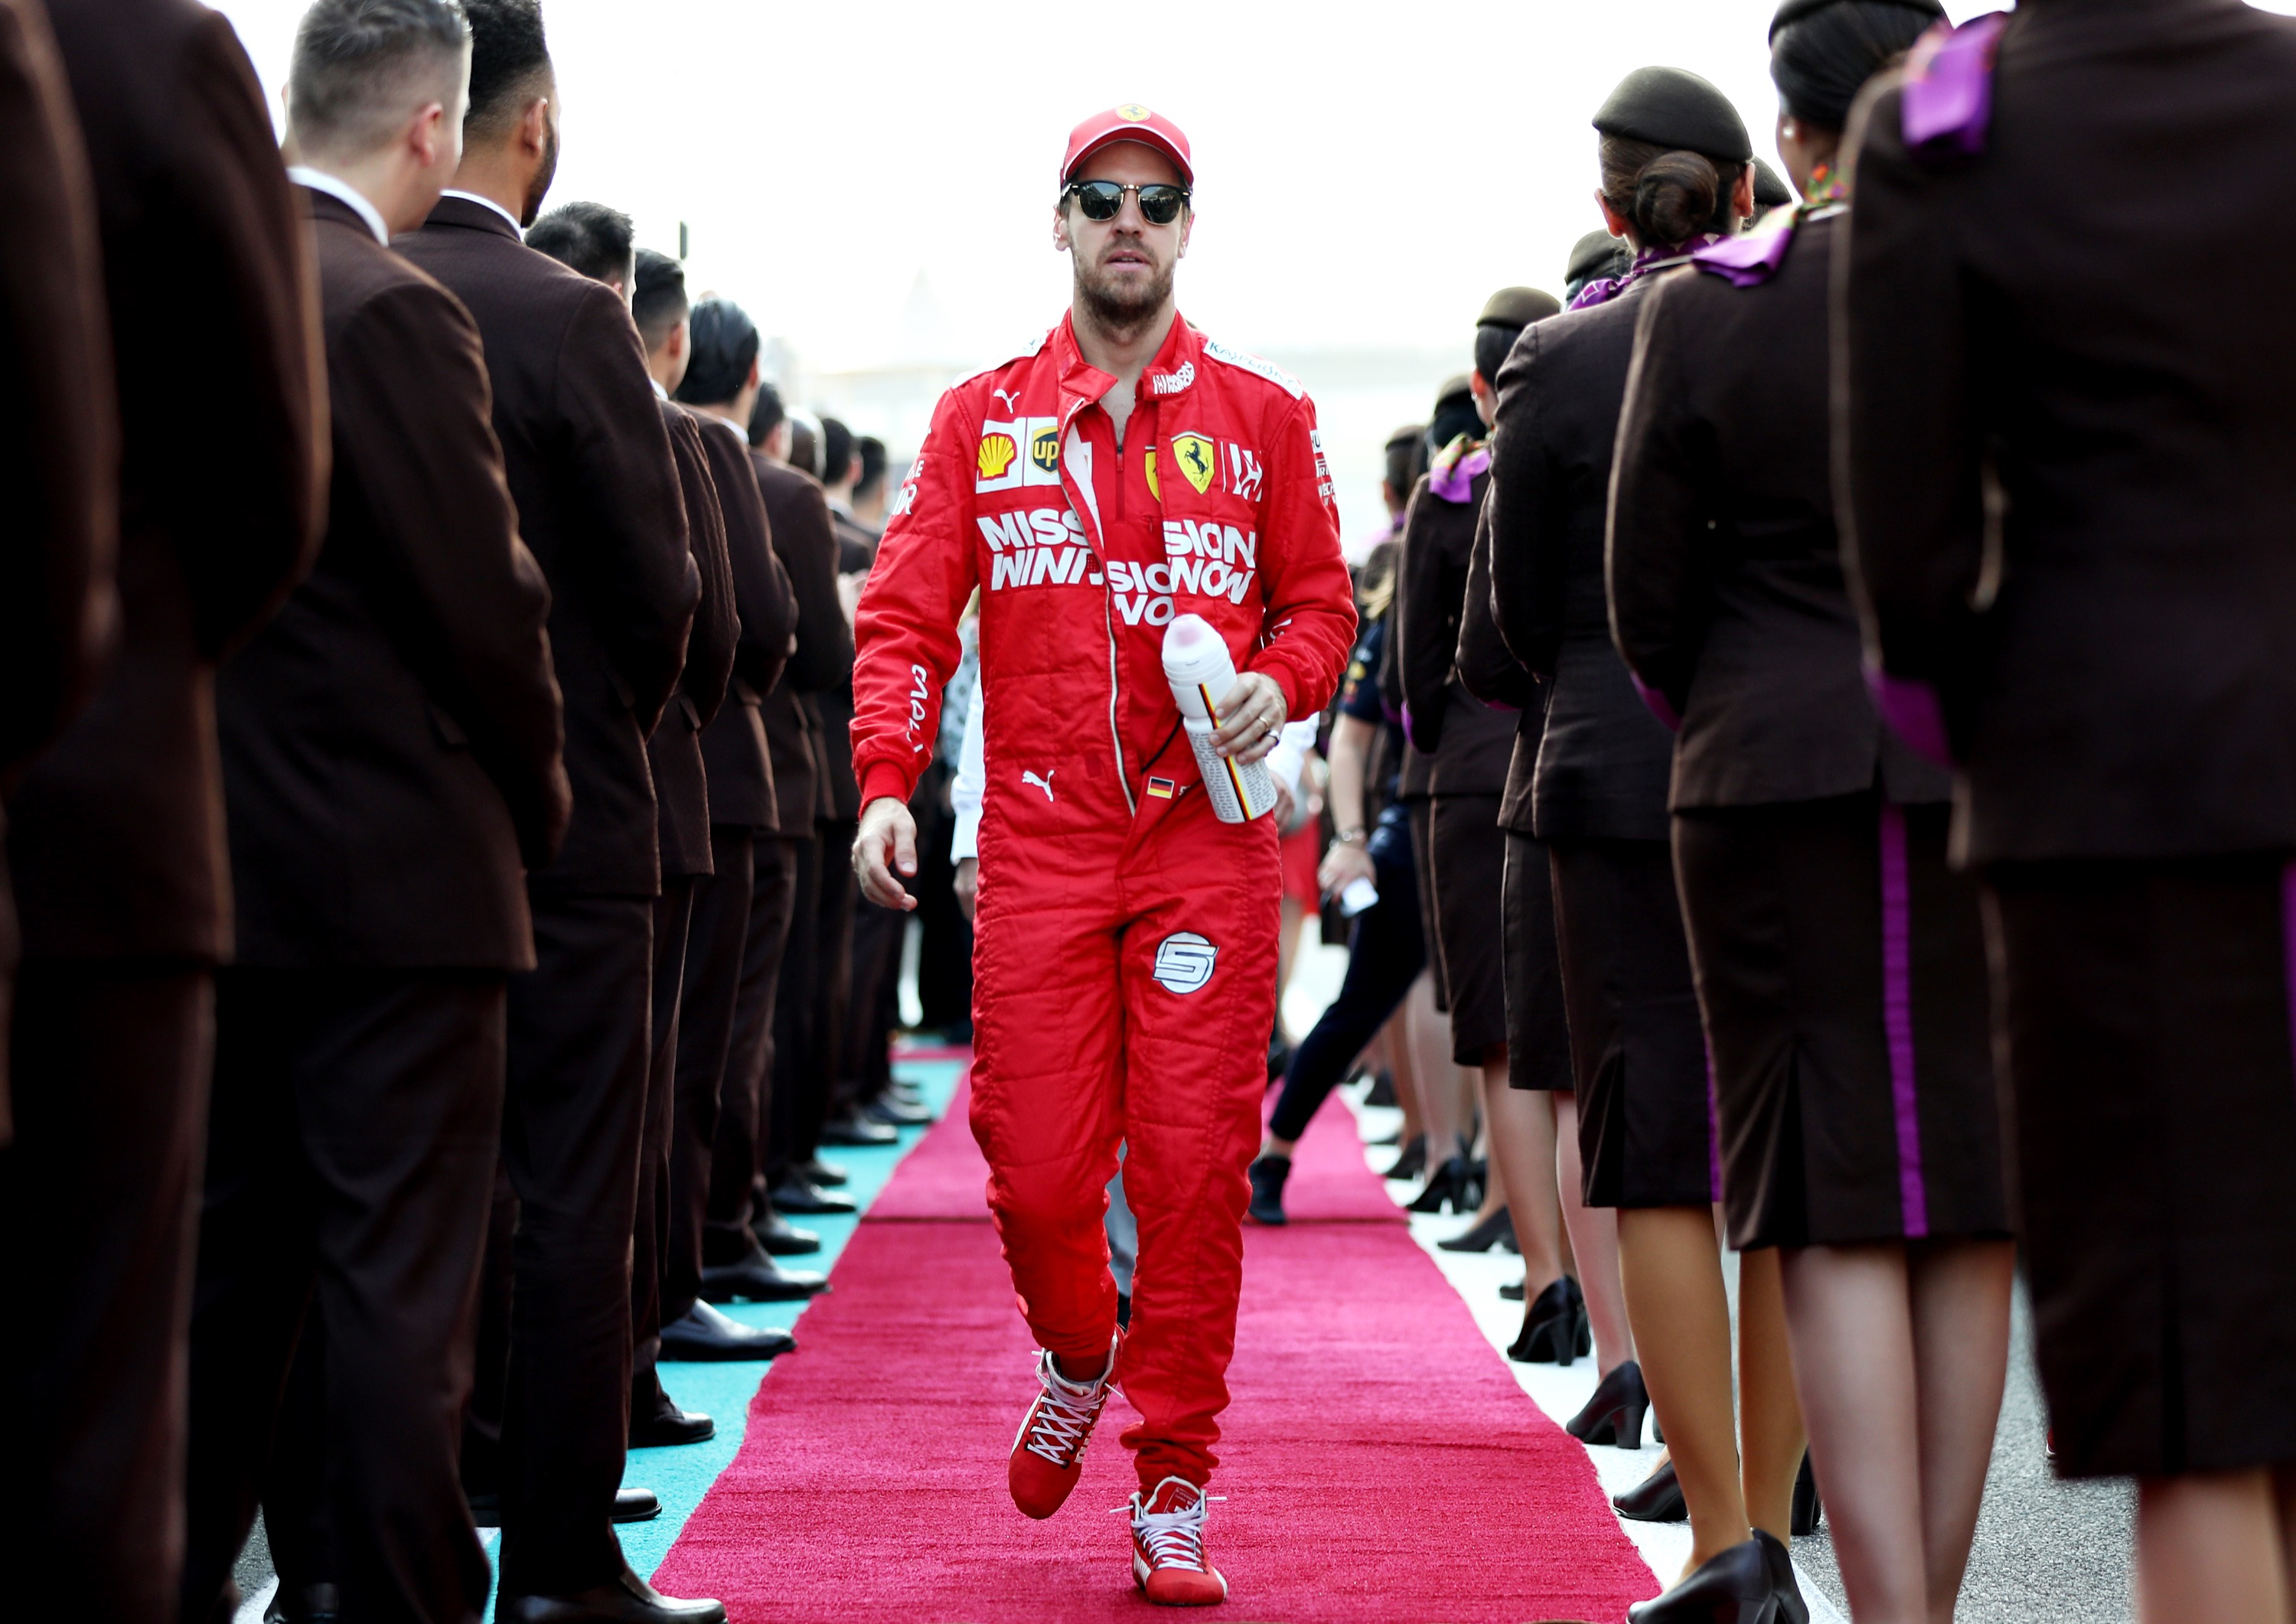 Vettel and Ferrari never really gelled, and he will leave the team at the end of this year.